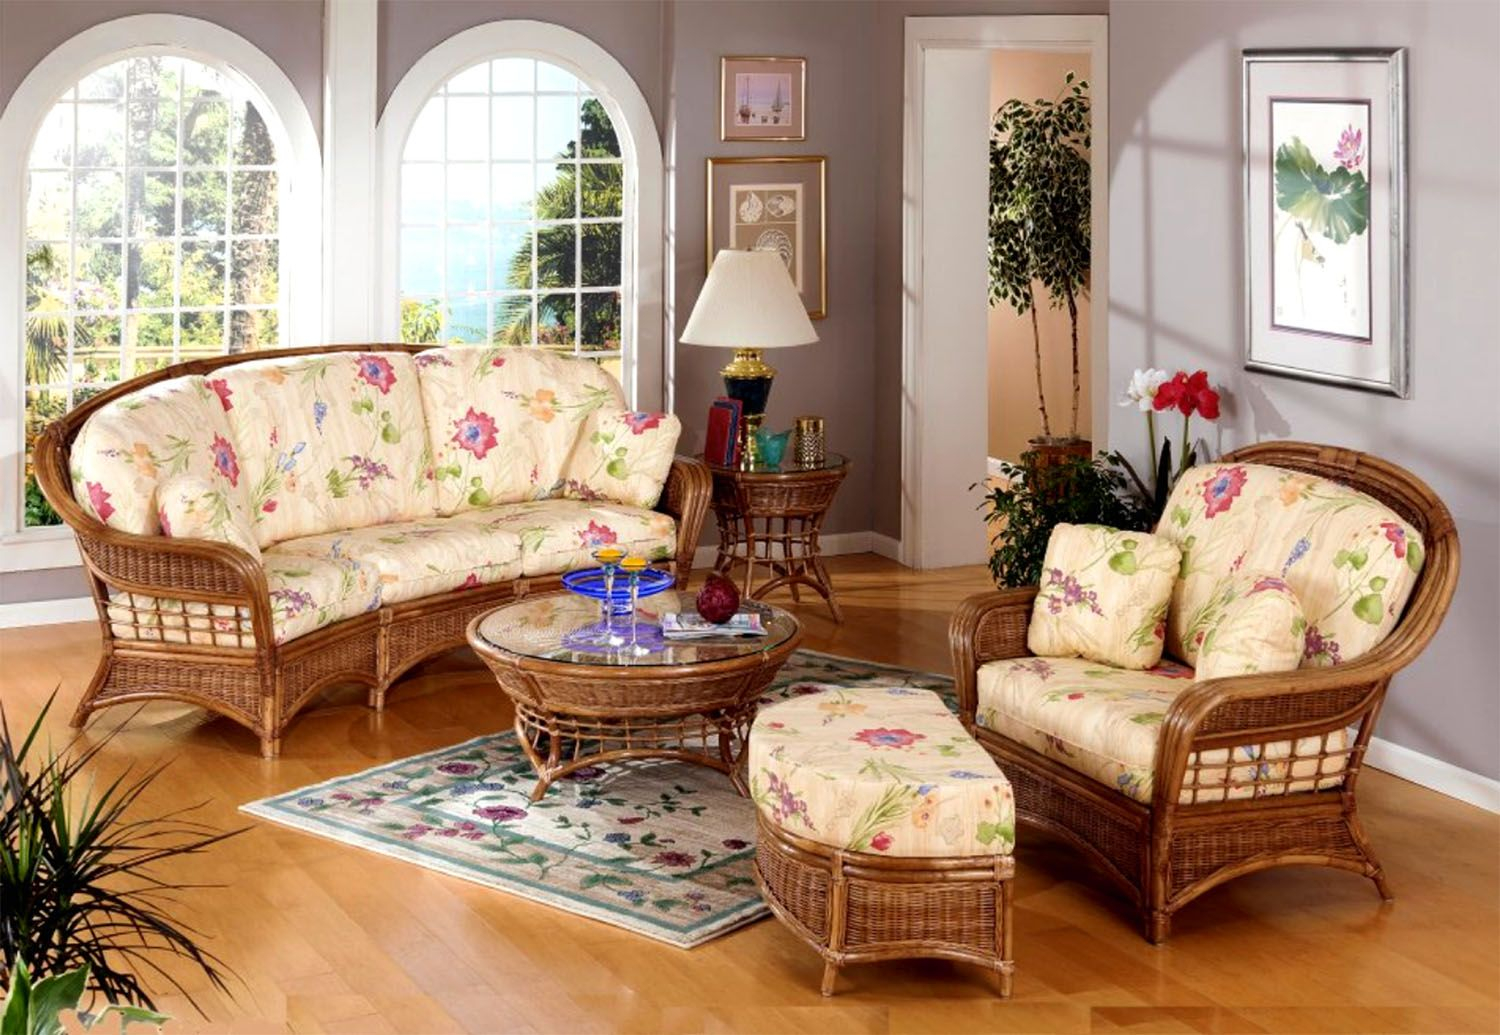 Mountain View Rattan Wicker Coffee Table With Glass From for Mountain View Furniture Stores